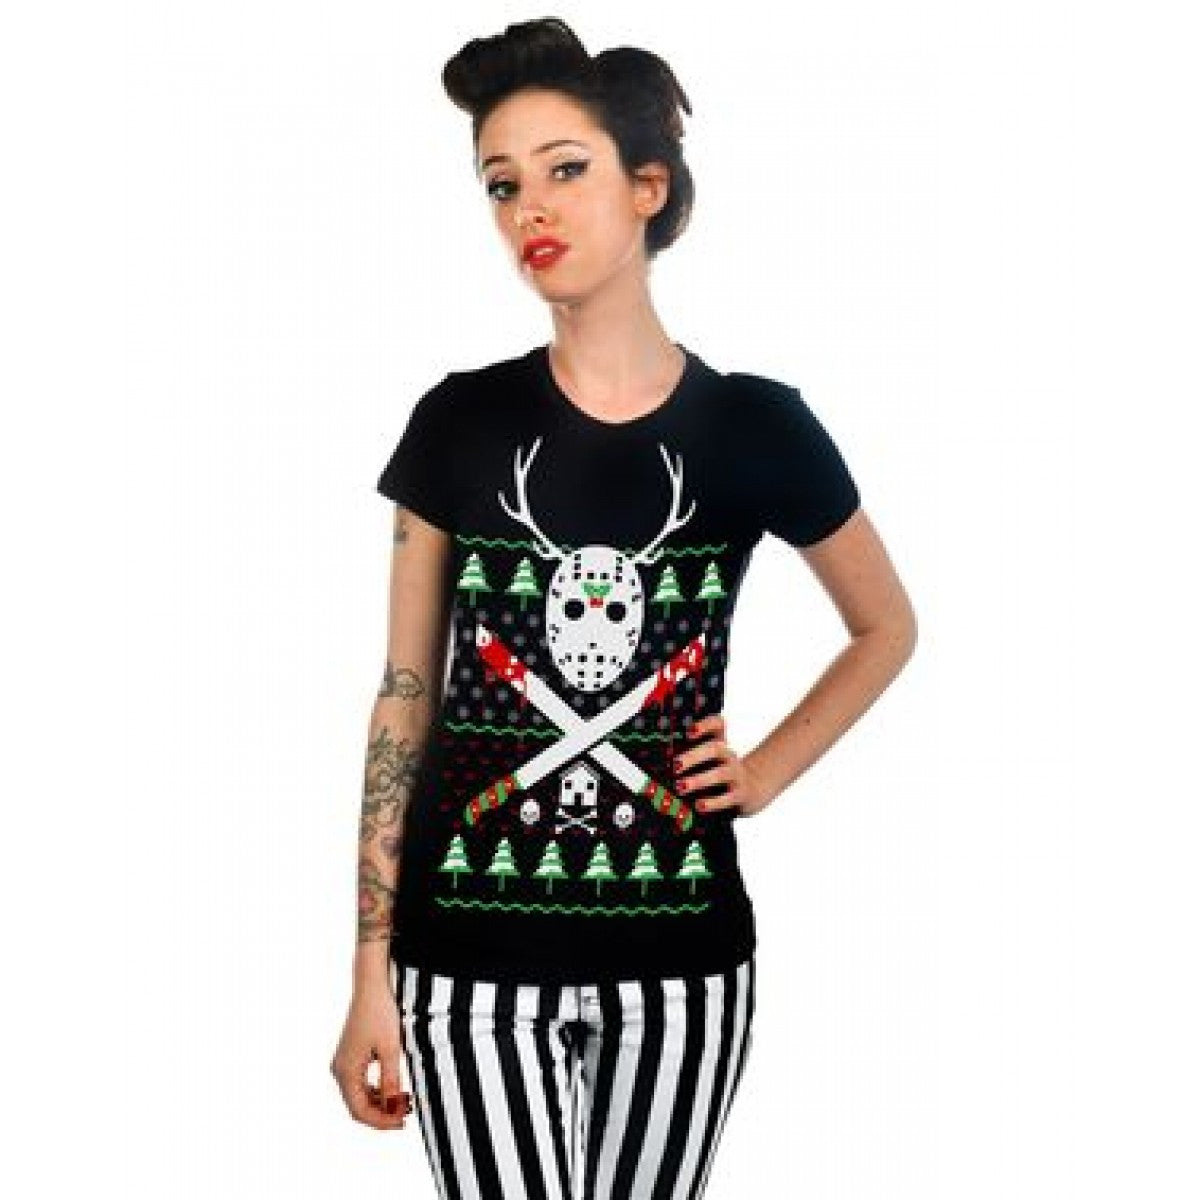 Reindeer Games - Babydoll T-Shirt by Too Fast - Highway Thirty One